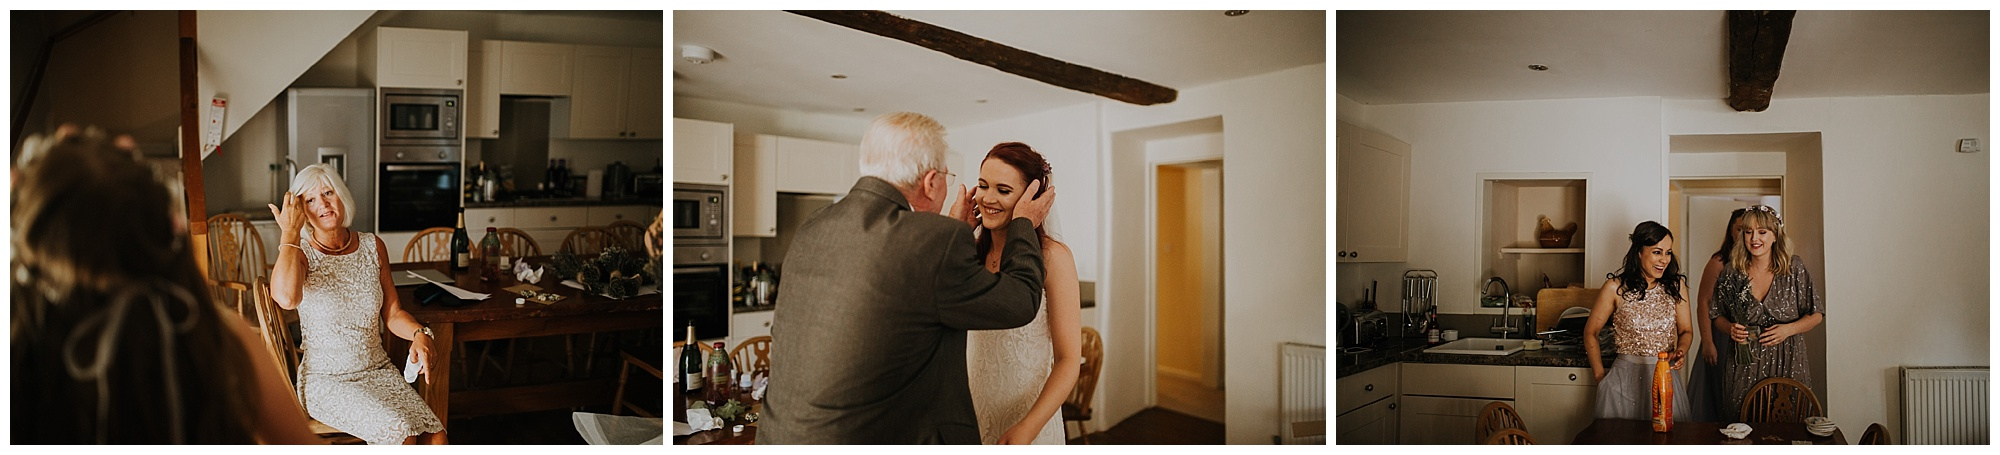 grandfather sees the bride for the first time